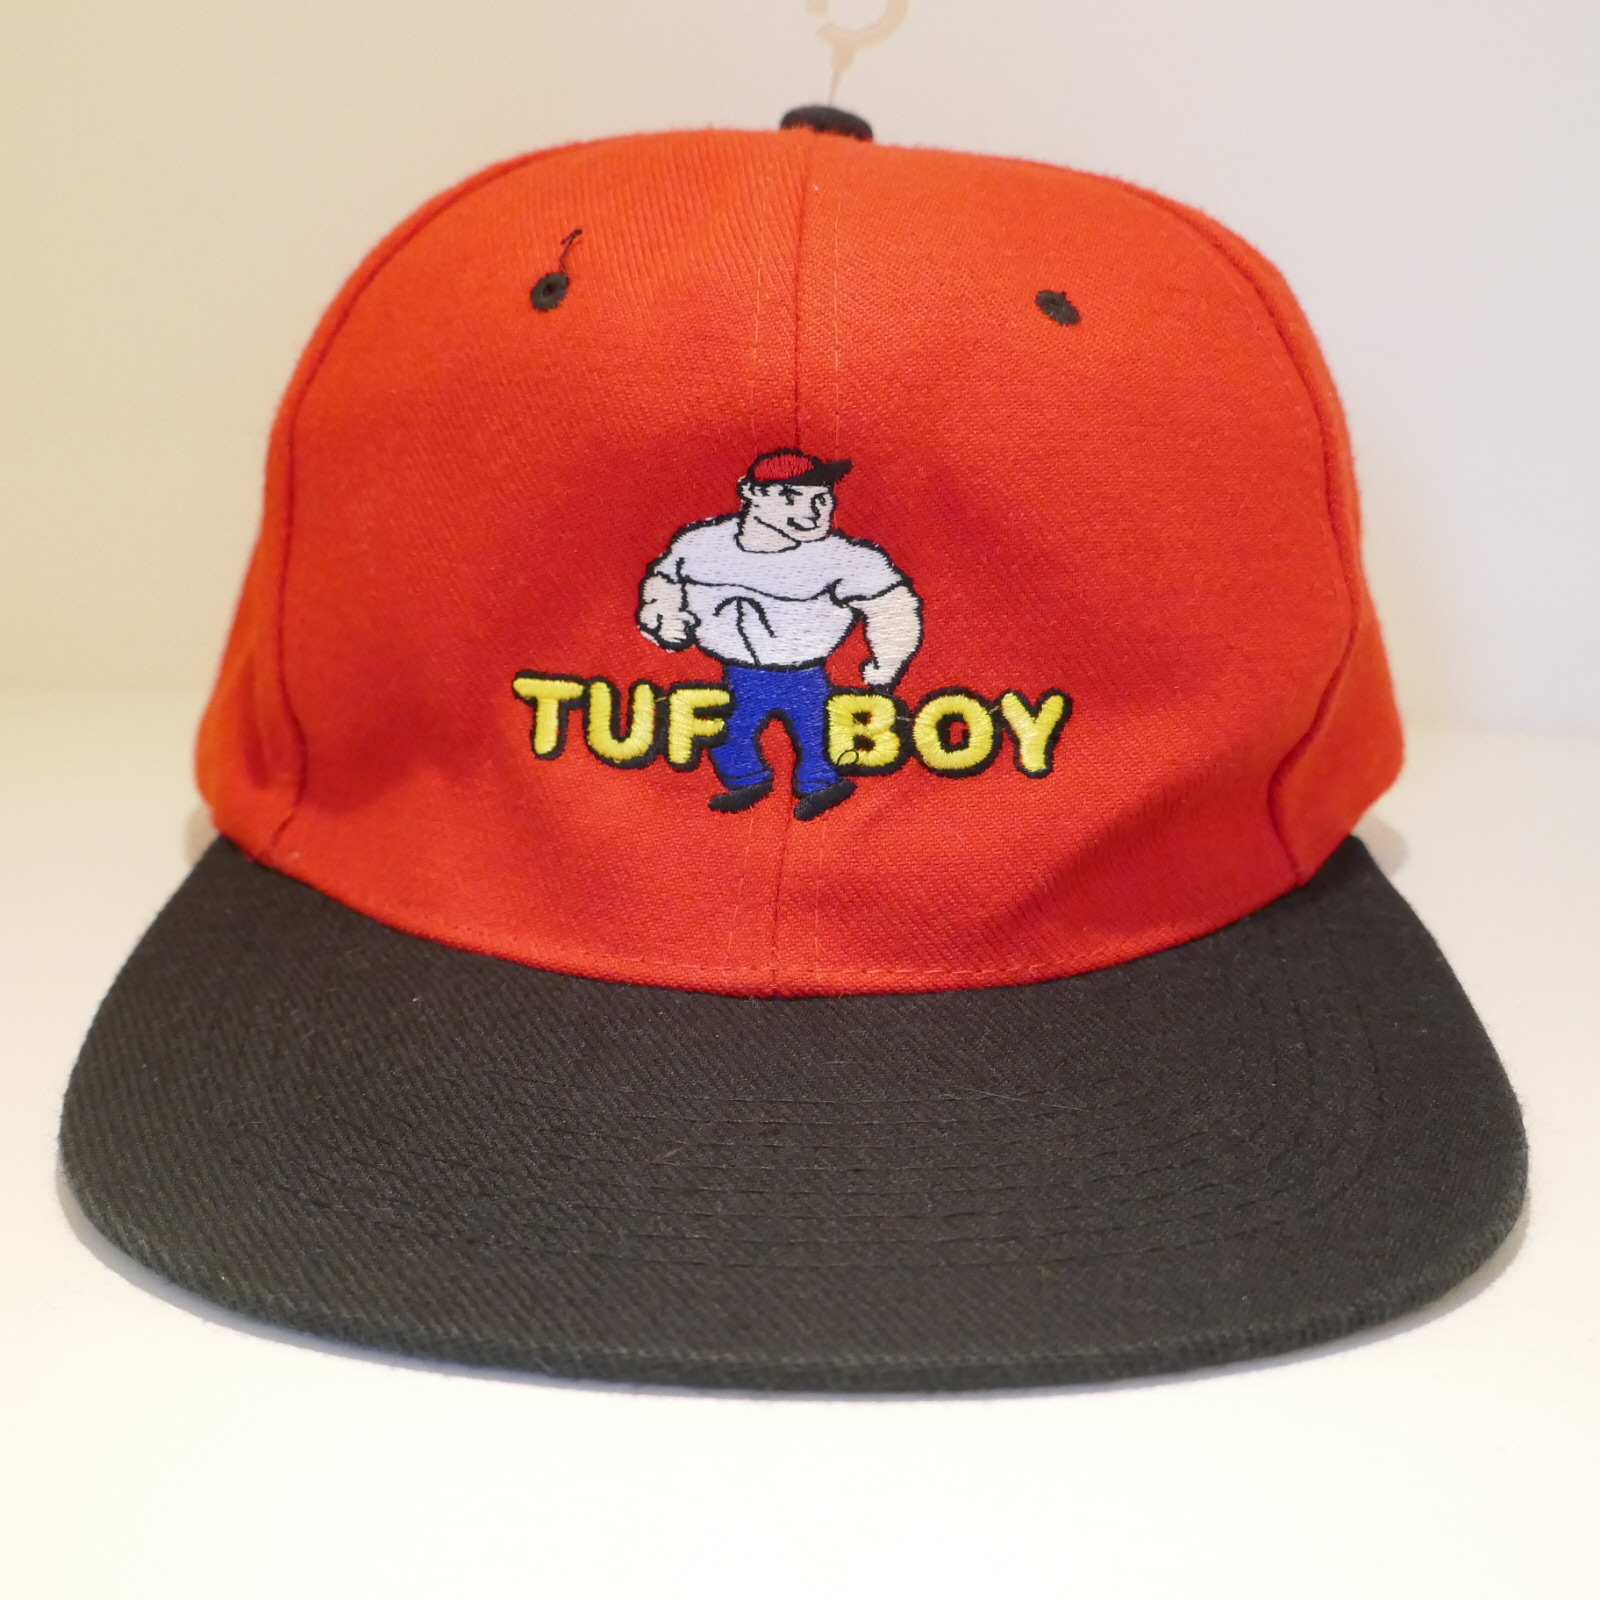 USED TUF BOY CAP RED×BLACK